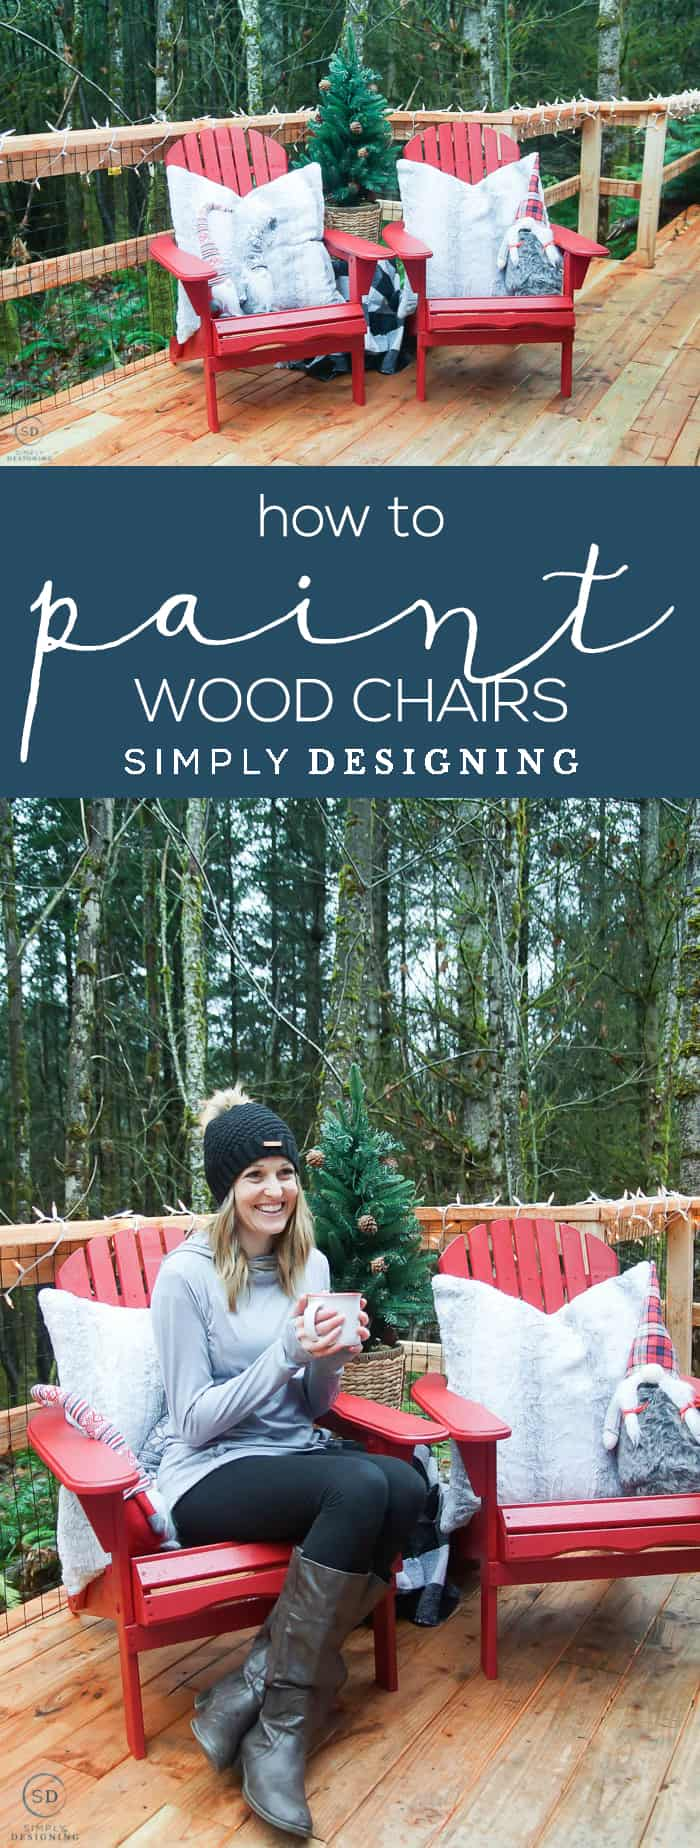 How to Paint Wood Chairs - I am sharing my tips and tricks for How to Paint Wood Chairs easily so that you can get a near-flawless result every single time